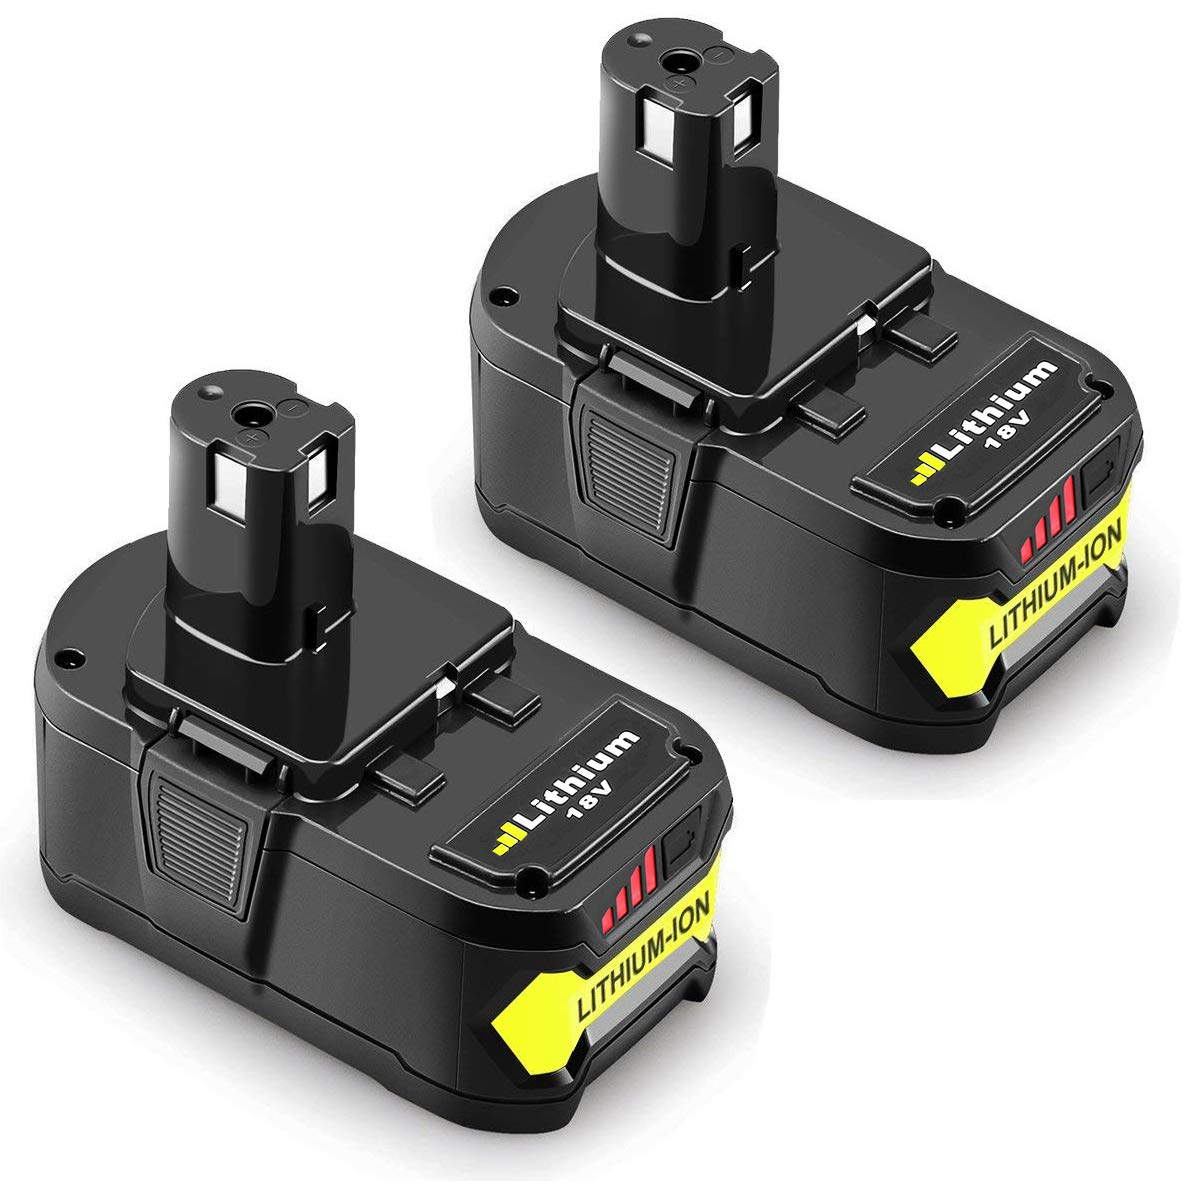 4.0Ah for Ryobi 18V Battery P108 ONE+ P104 P105 P102 P103 P107 P109 Cordless Power Tools Battery ENERMALL